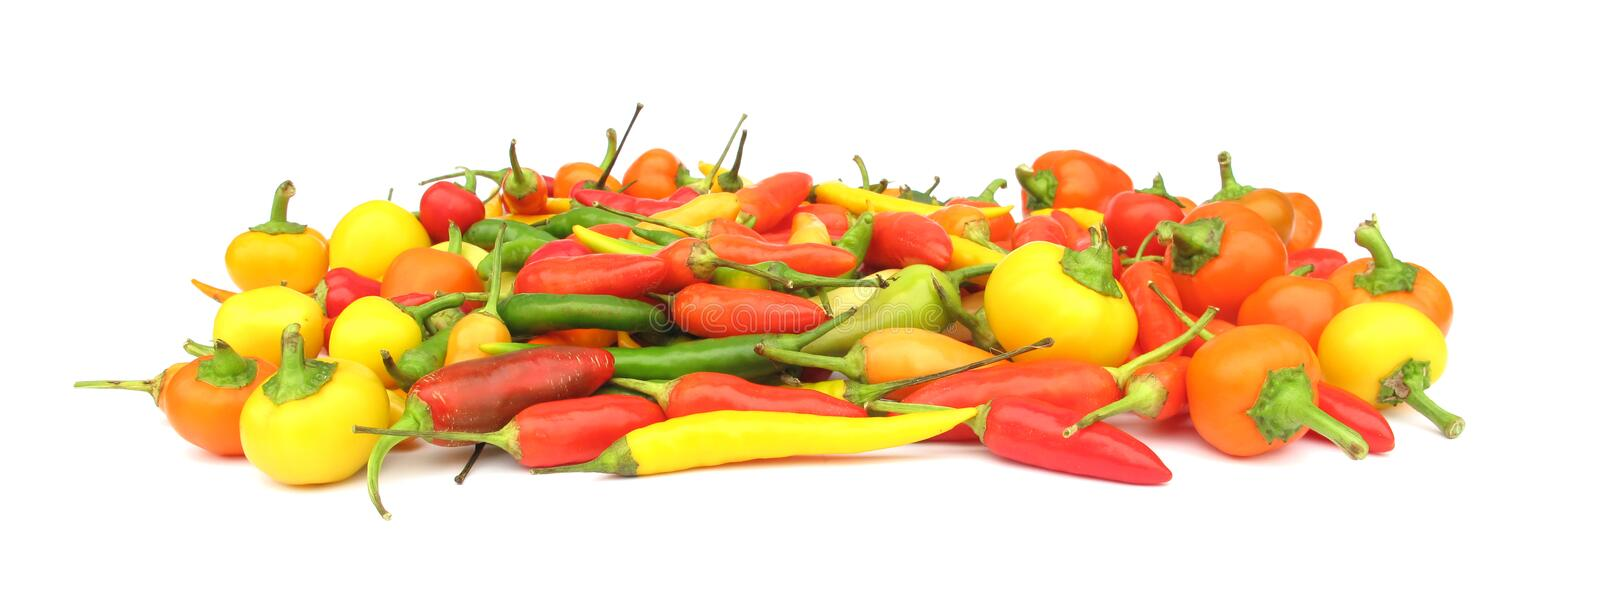 Chili Peppers Paprika Stock Photography